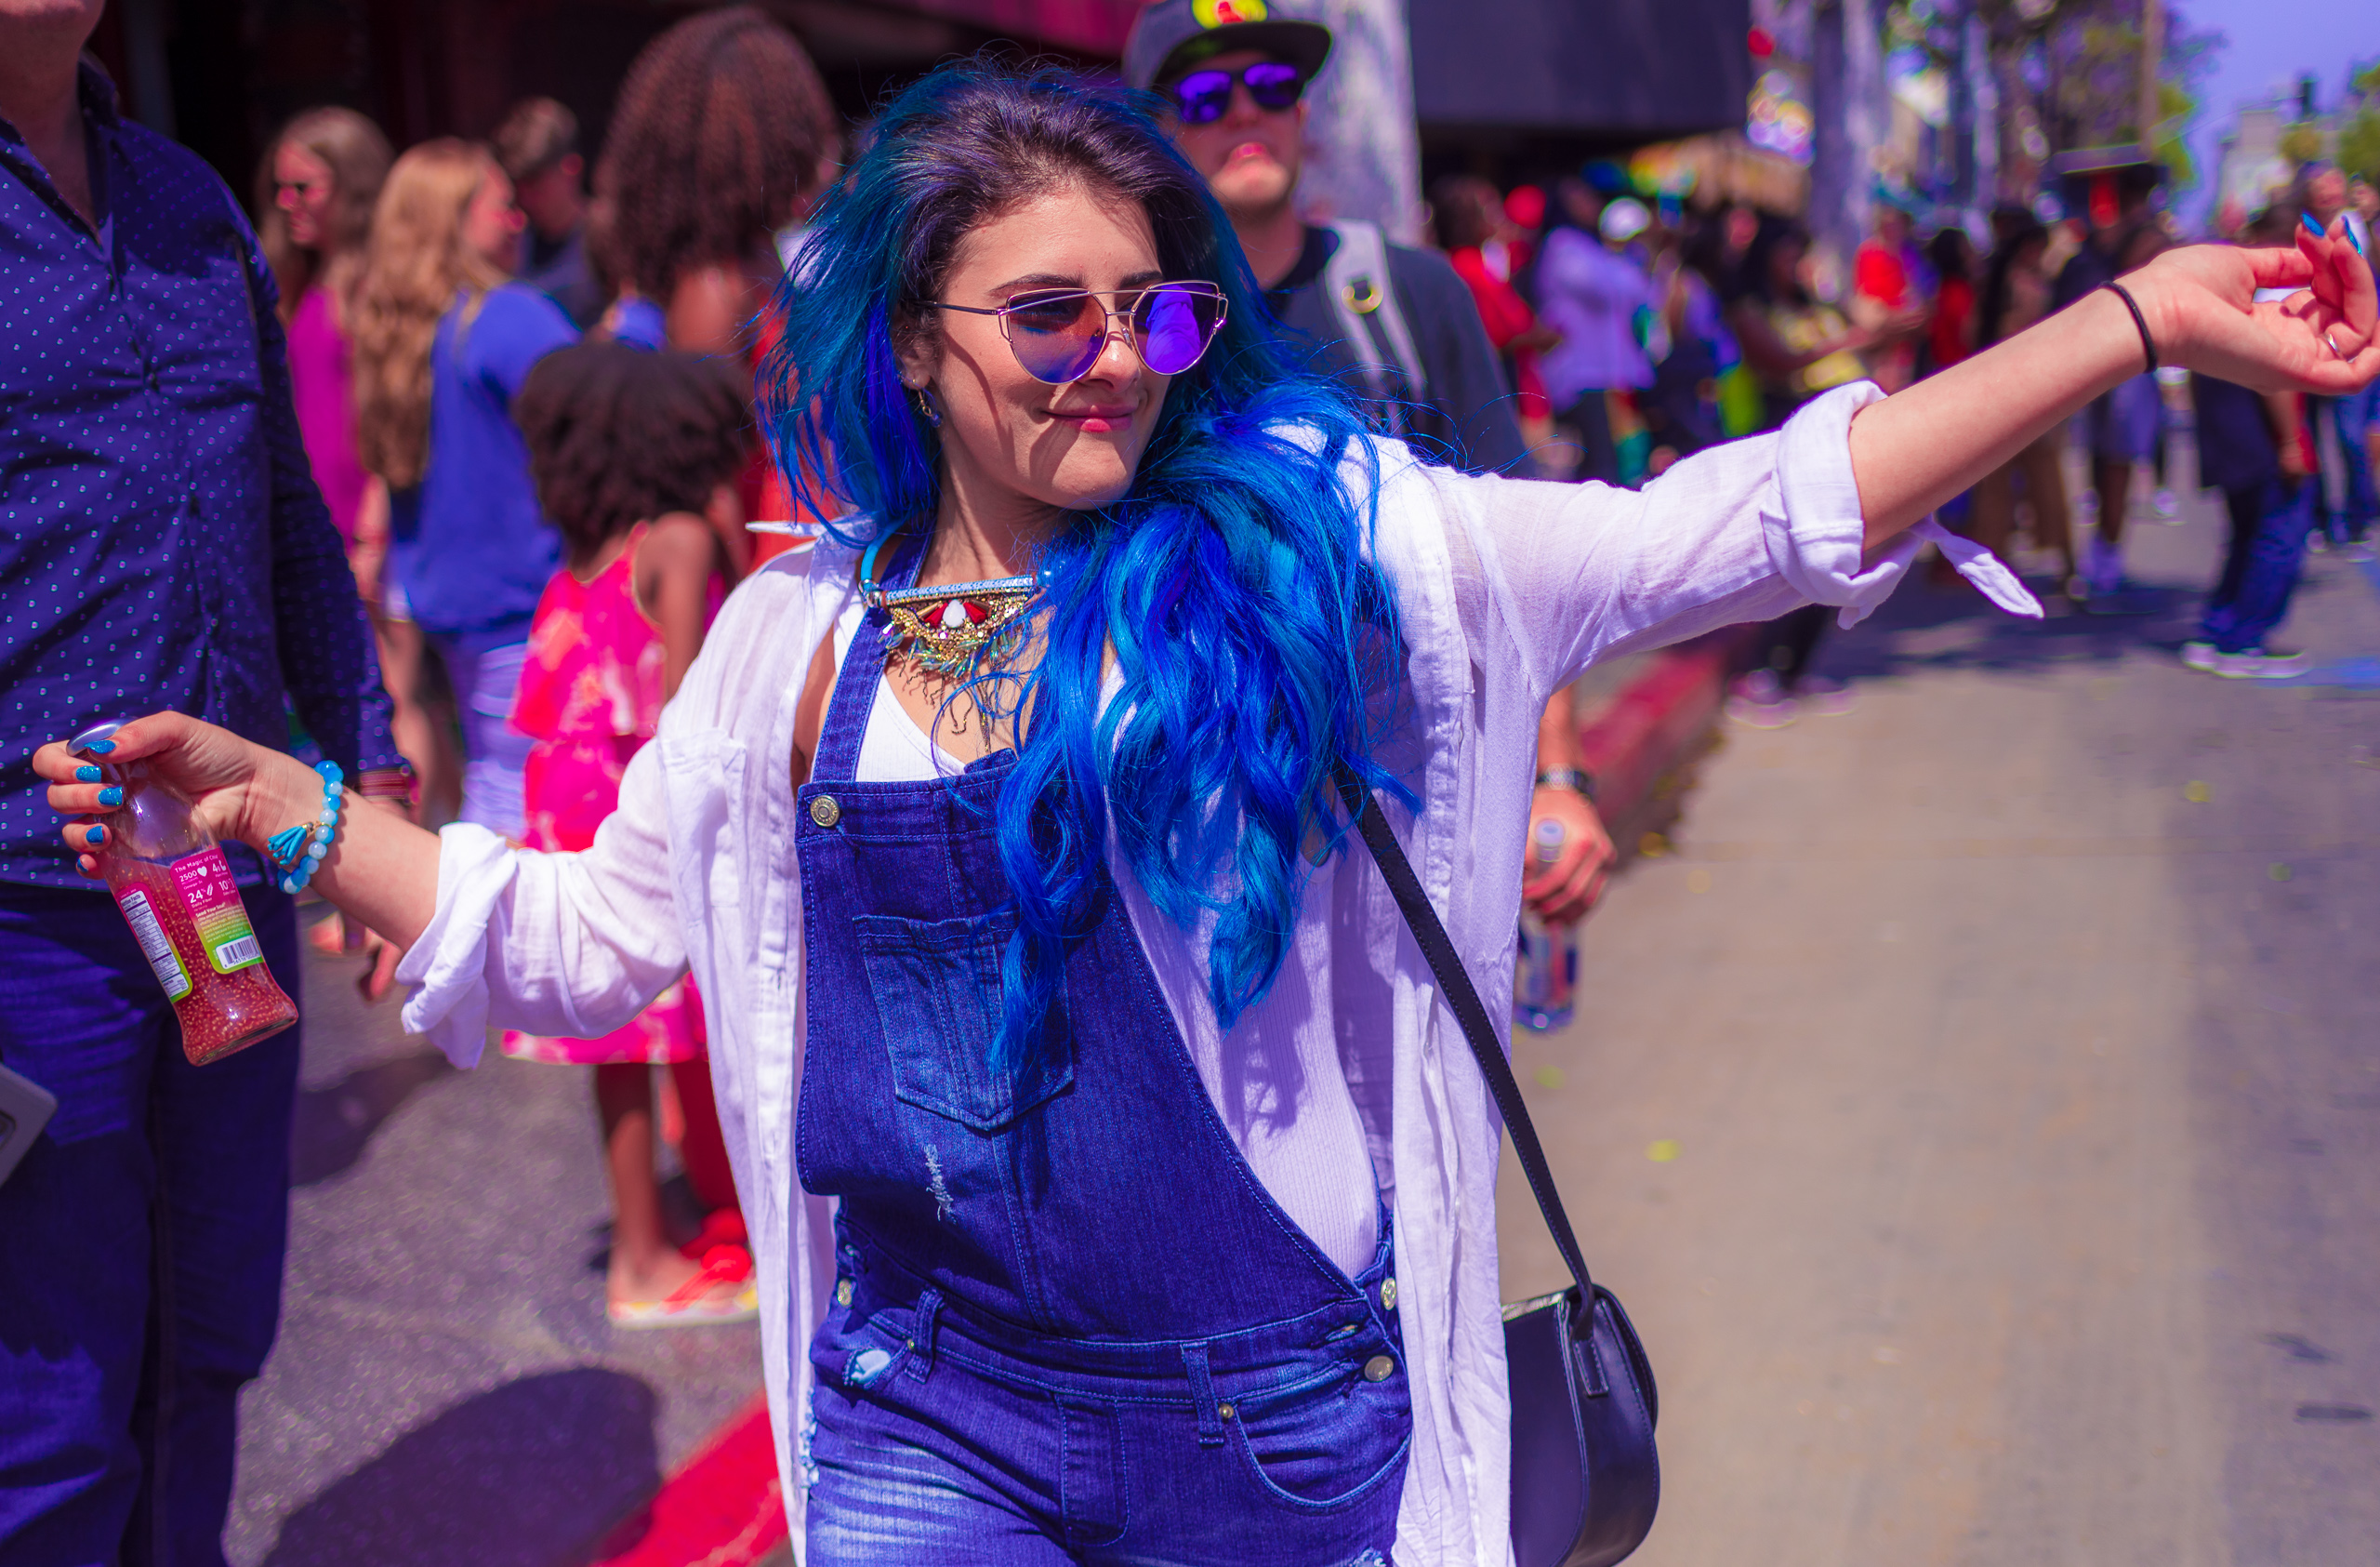 """a woman walks down Hollywood Blvd holding a bottle of Chia Drink, the label reads """"the magic of chia"""". The woman has blue hair, overalls, and nail polish. Her arms are extended in joy and she walks with a big smile on her face."""